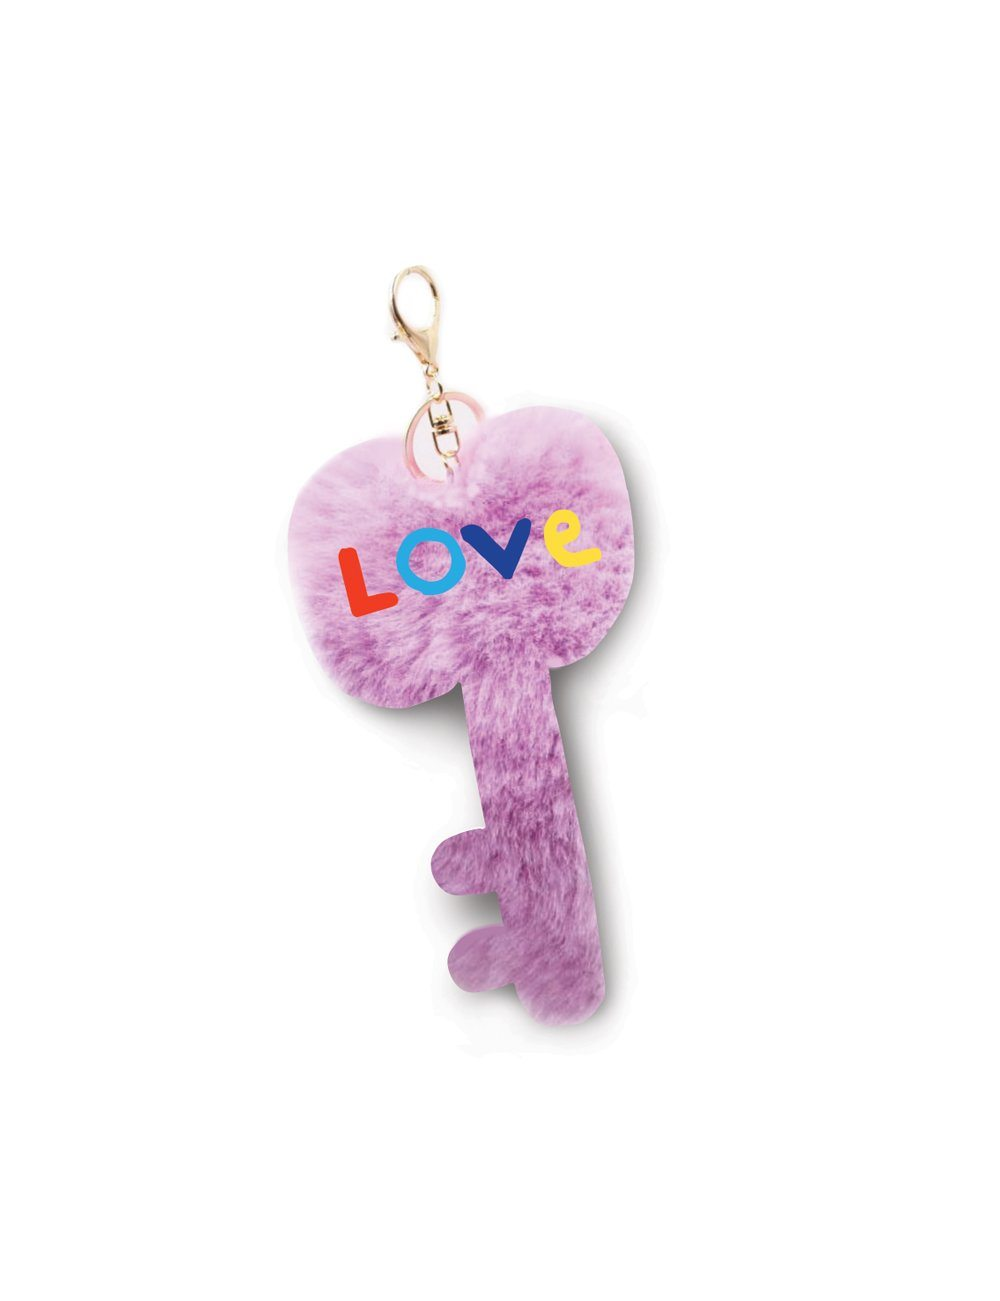 Love Plush Keyring x Misaki Kawai Textiles Third Drawer Down USA